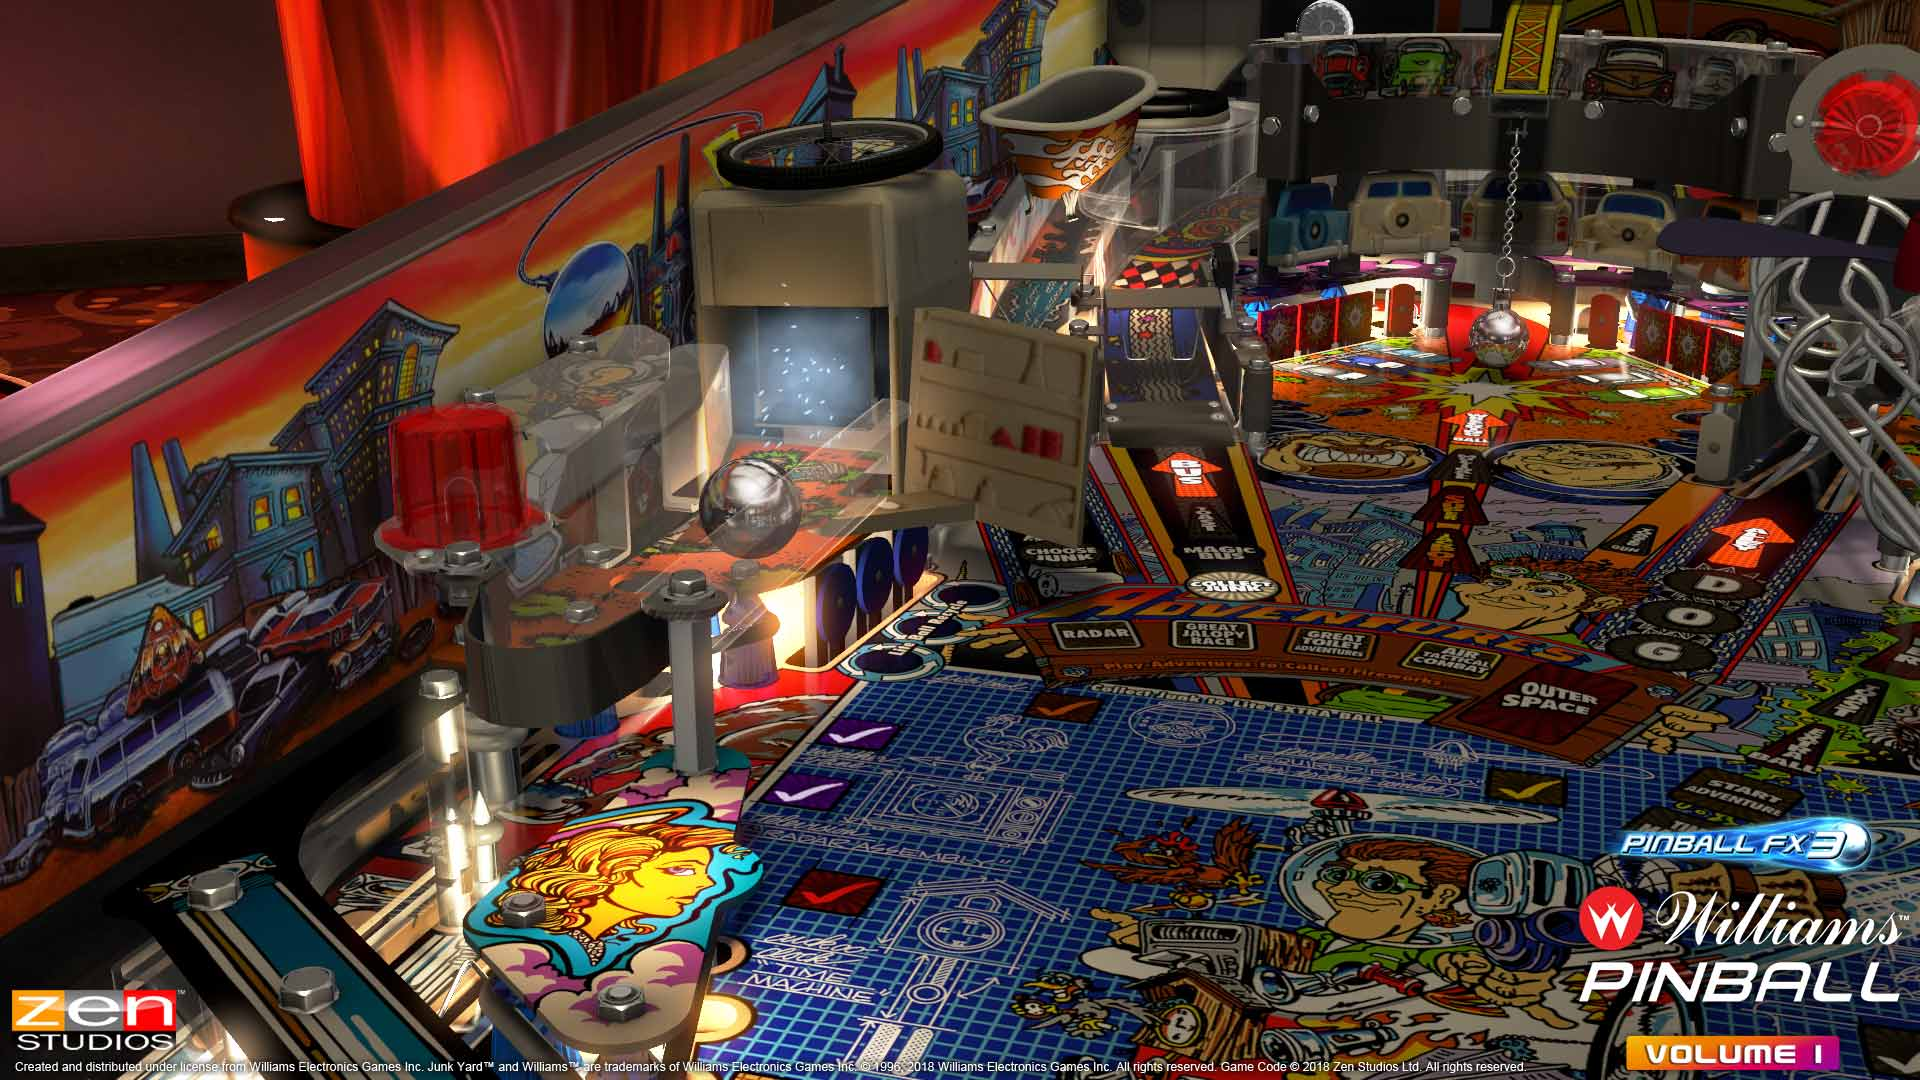 Pinball FX3 Volume 1 High Speed 2 Table